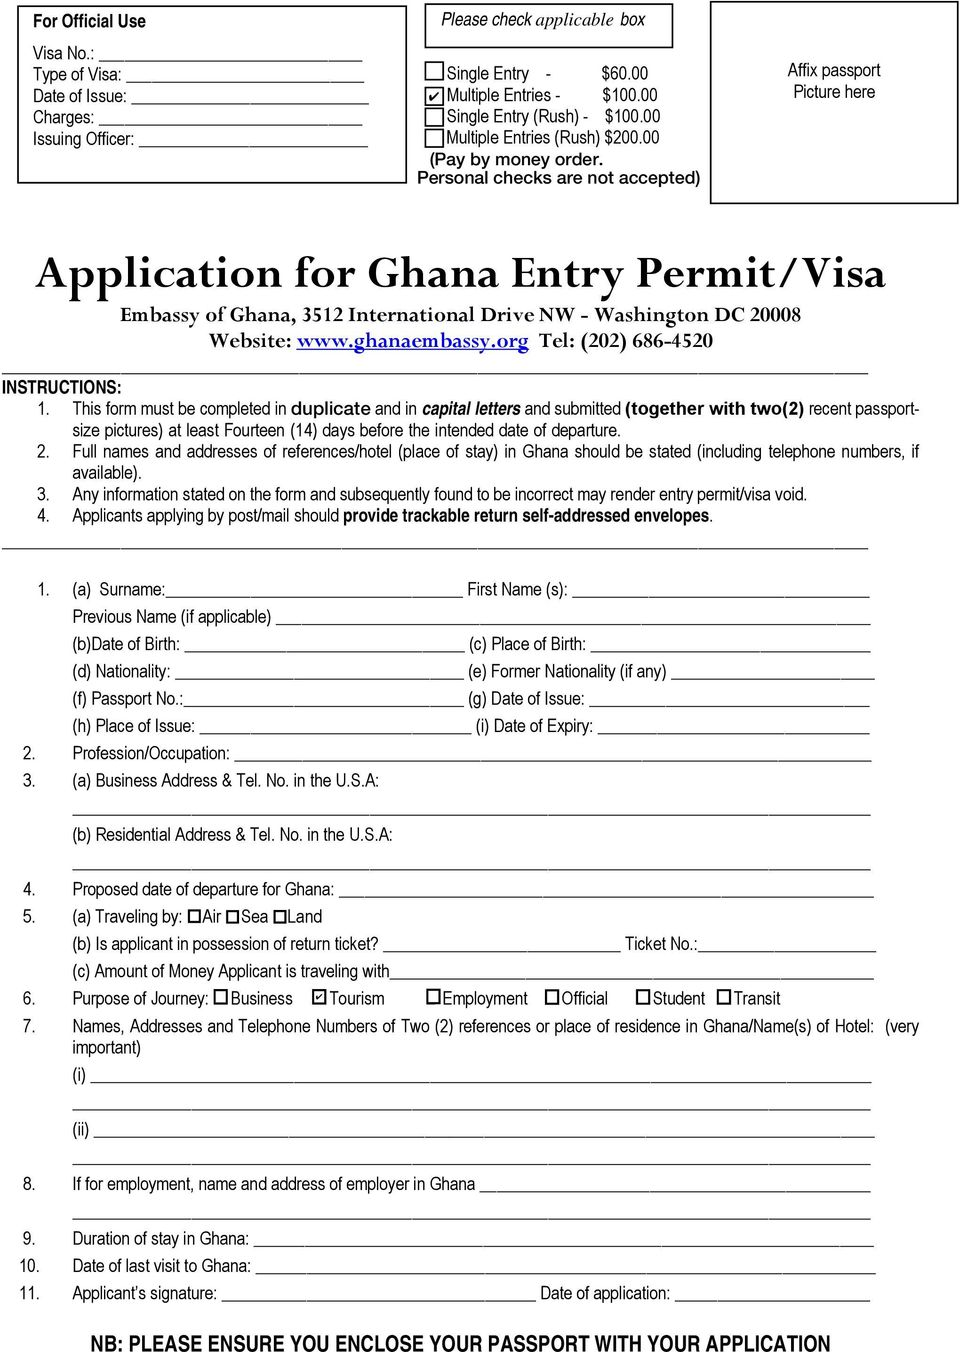 Personal checks are not accepted) Affix passport Picture here Application for Ghana Entry Permit/Visa Embassy of Ghana, 3512 International Drive NW - Washington DC 20008 Website: www.ghanaembassy.